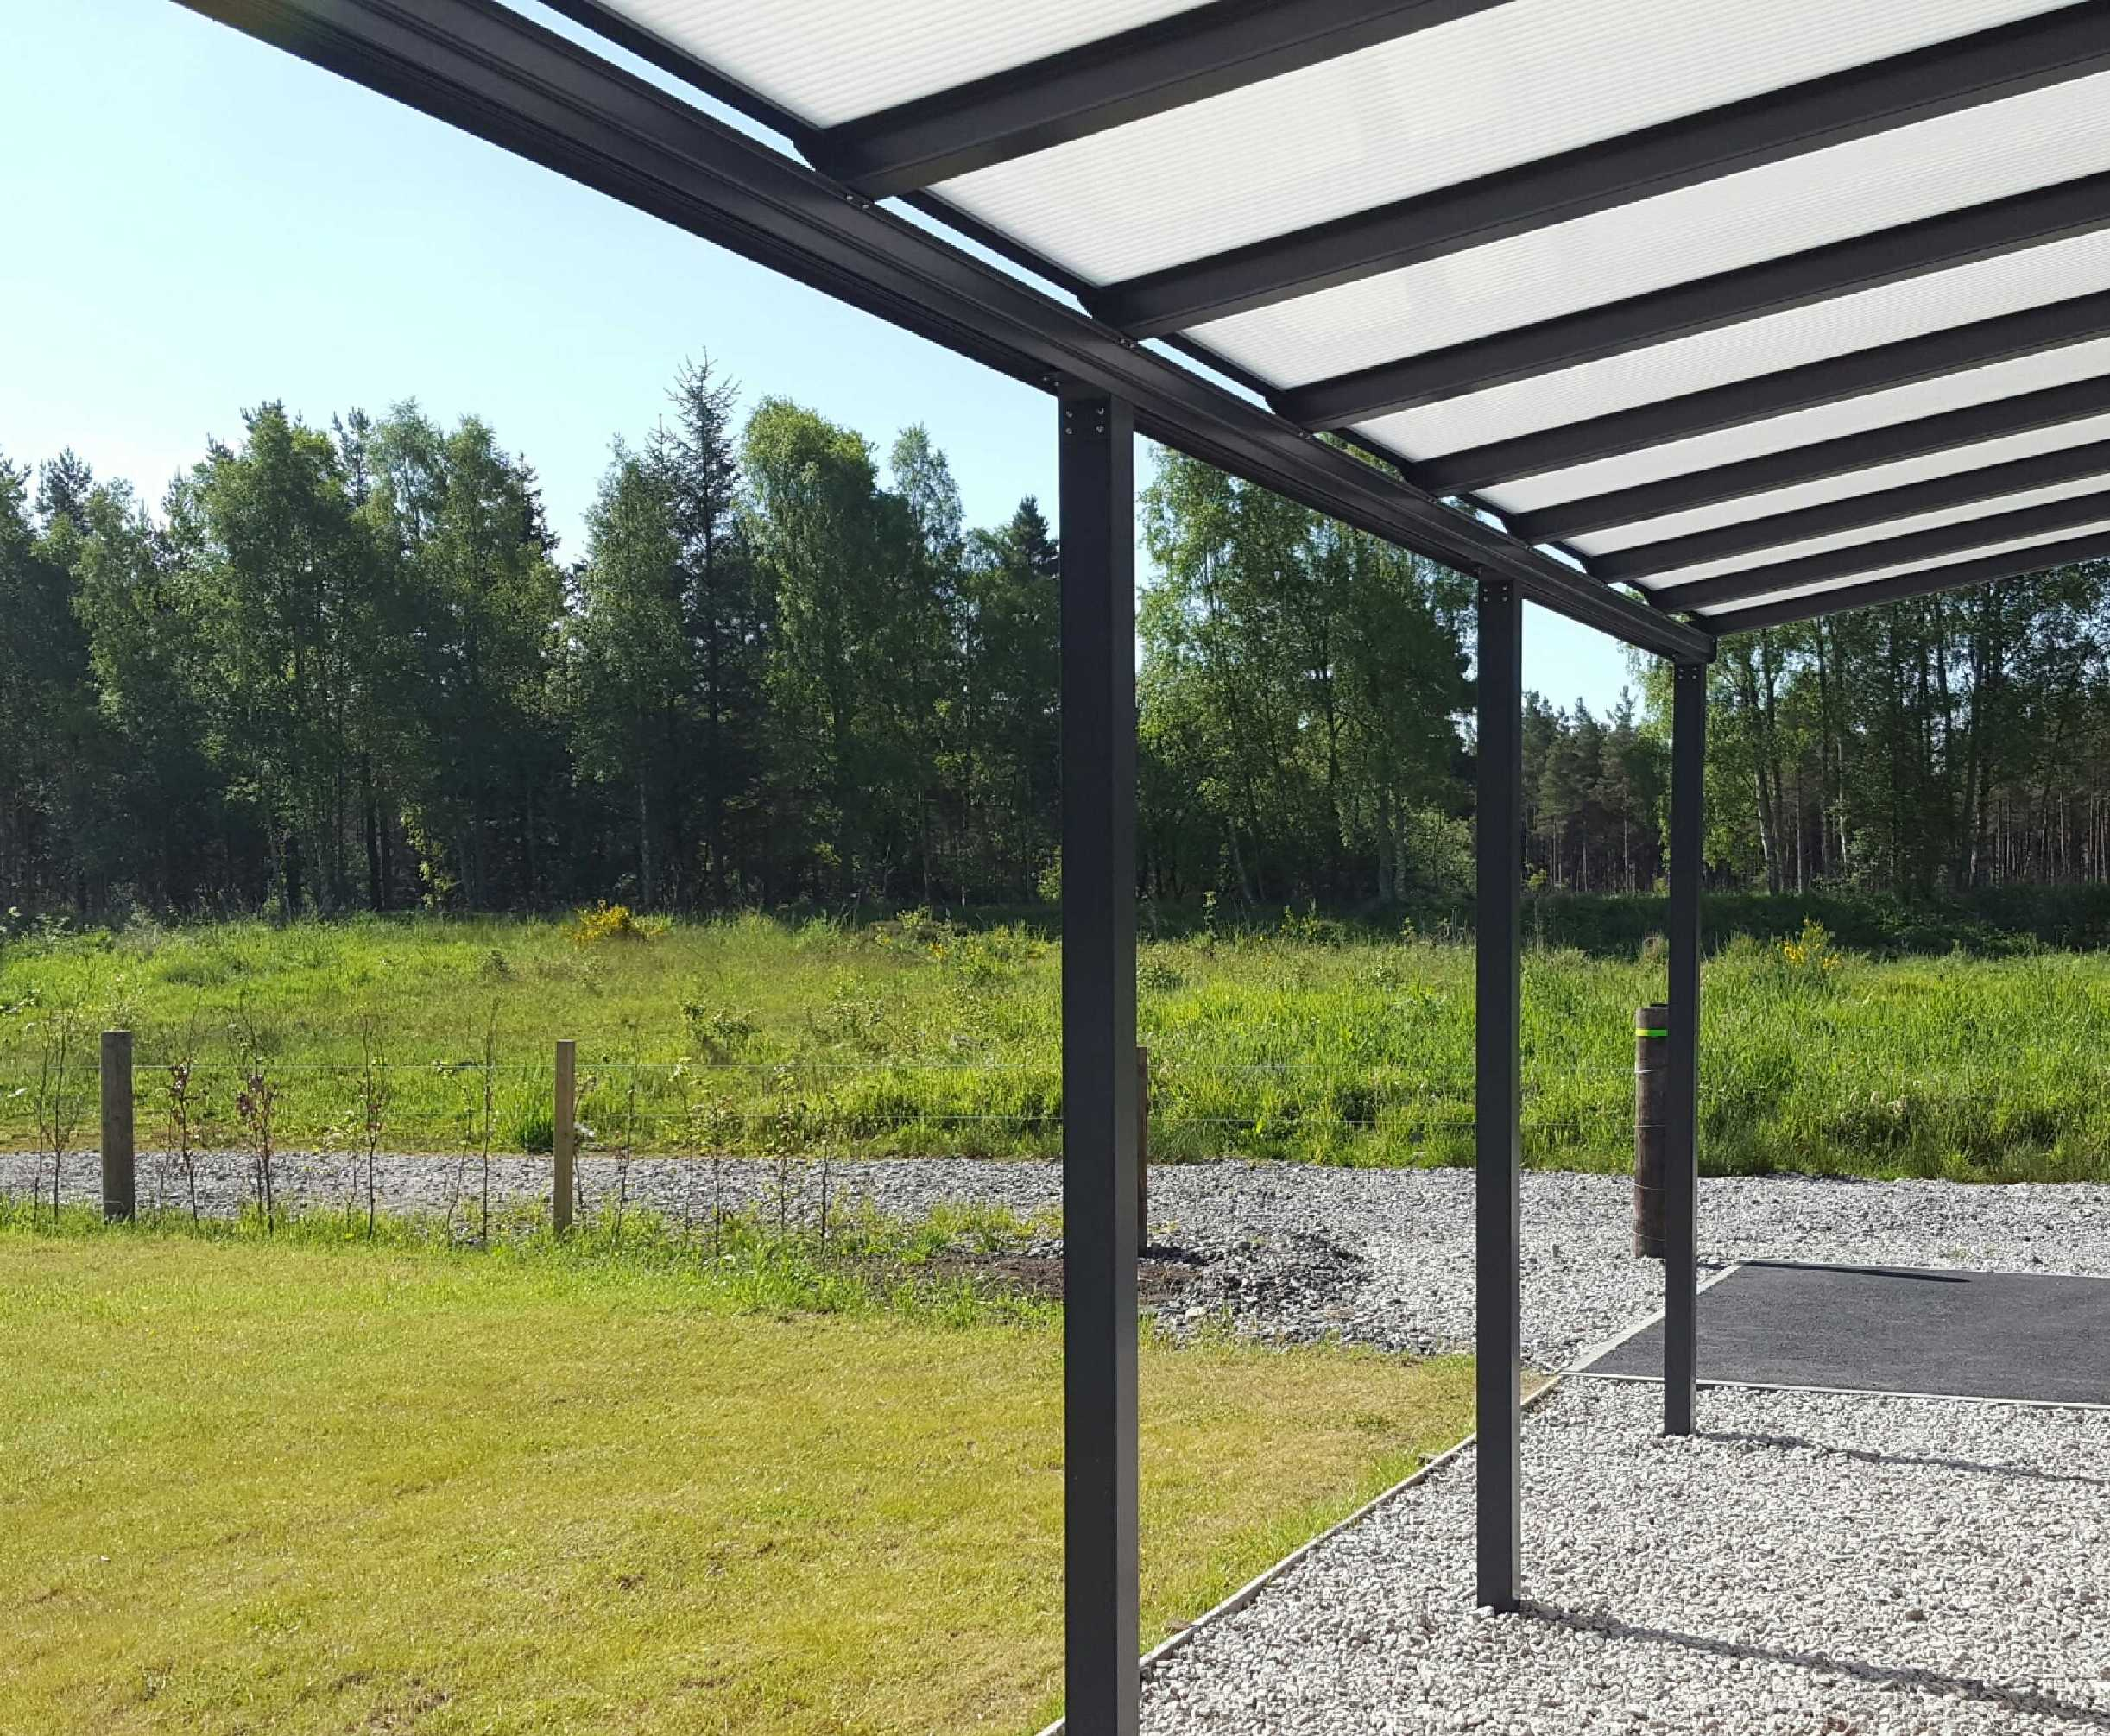 Omega Smart Lean-To Canopy, Anthracite Grey, 16mm Polycarbonate Glazing - 7.4m (W) x 4.5m (P), (4) Supporting Posts